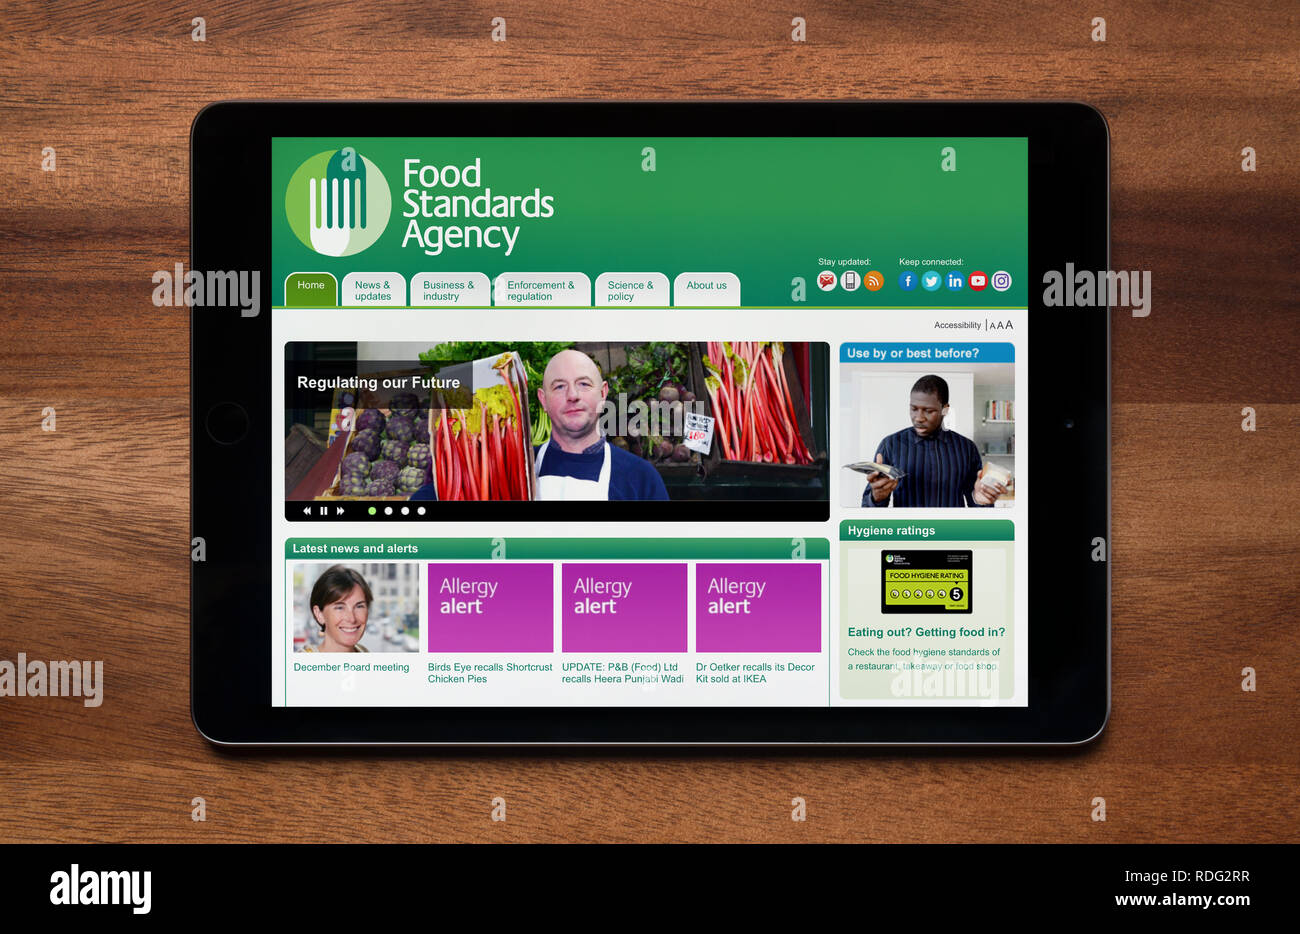 The website of the Food Standards Agency is seen on an iPad tablet, which is resting on a wooden table (Editorial use only). - Stock Image